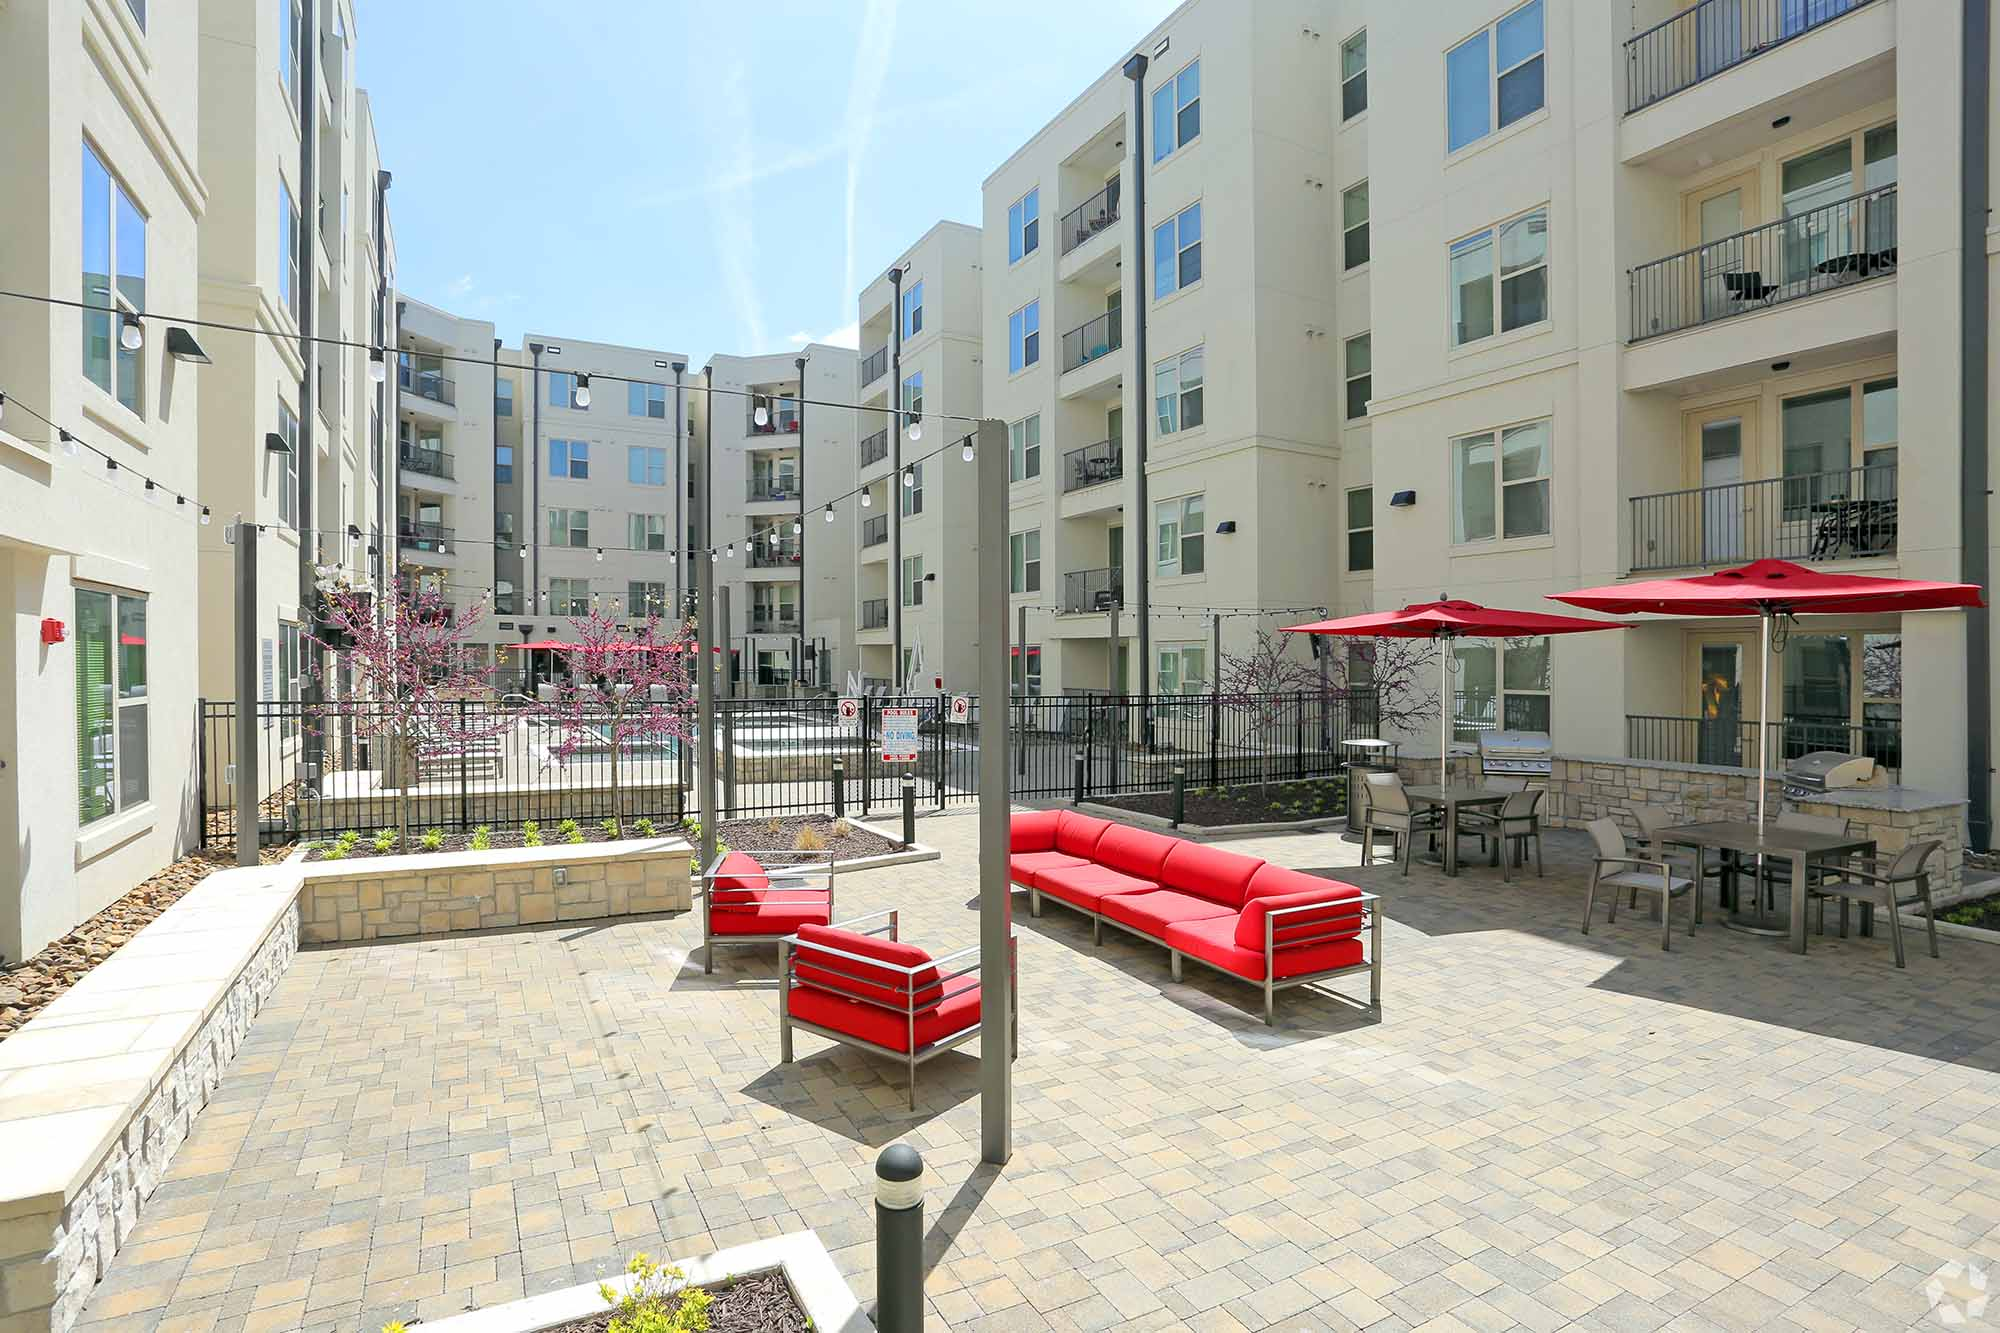 YOUnion Fayetteville courtyard